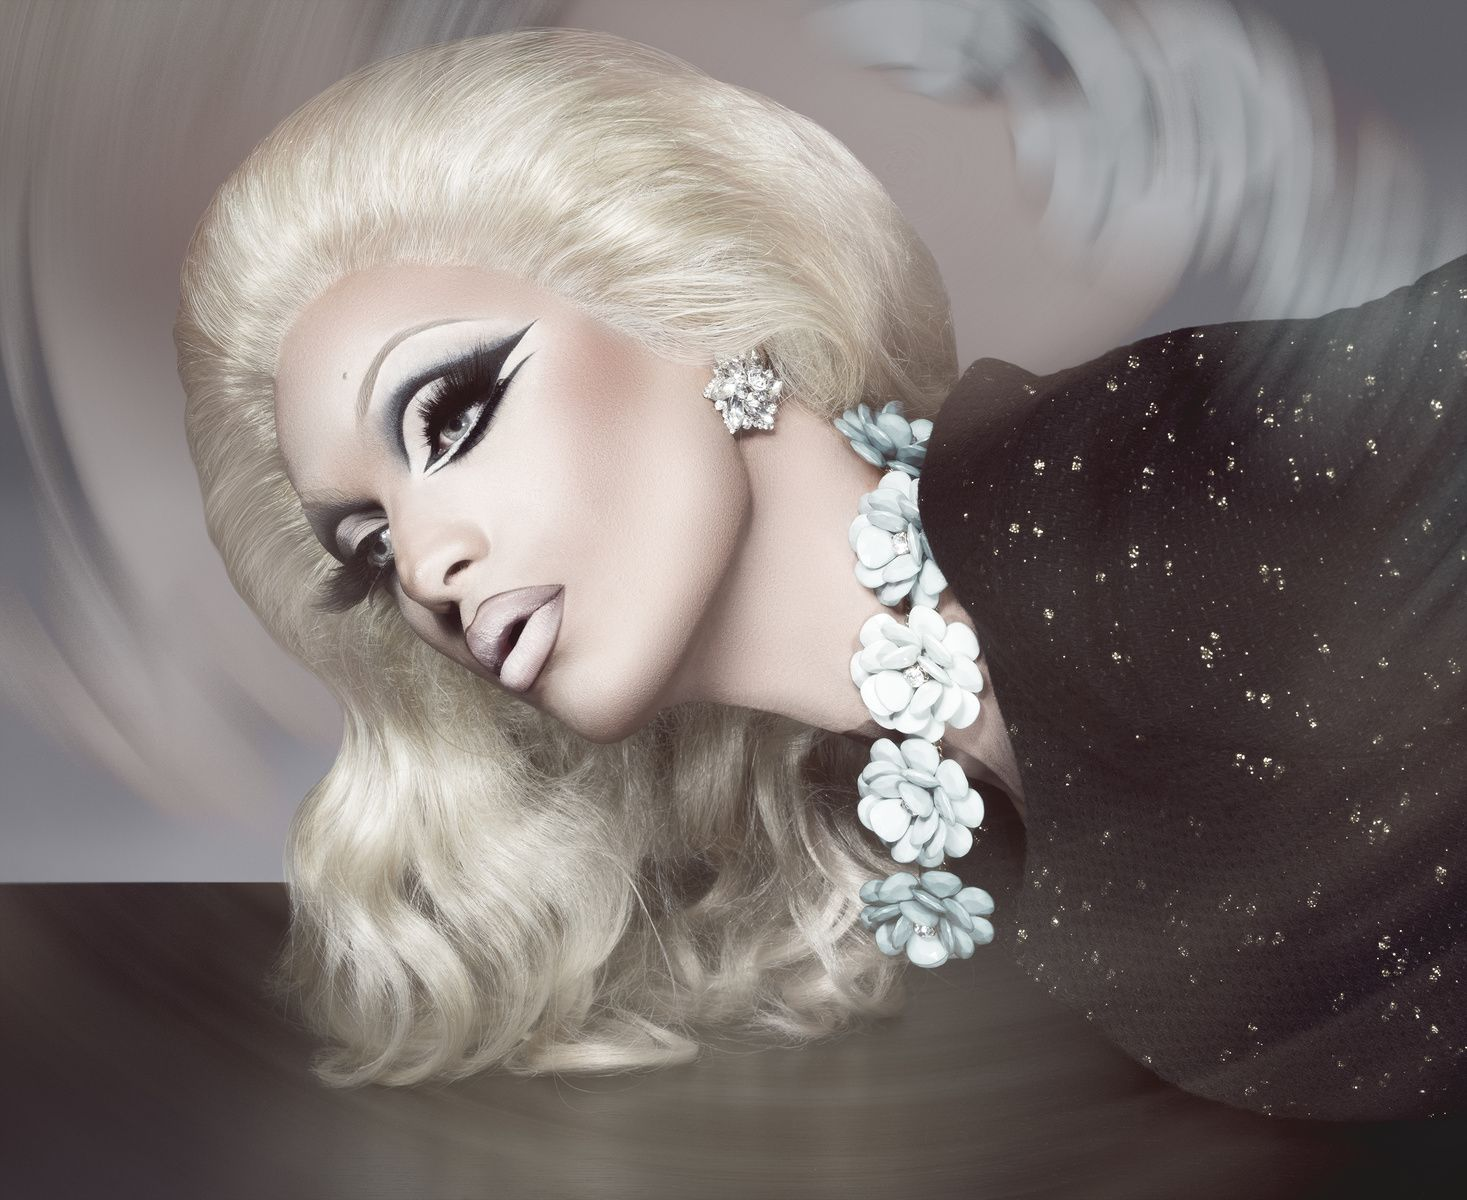 Miss fame by marcelo cantu drag queens pinterest queens miss fame is one of the fastest rising queens in the country with as much talent as she has beauty hailing from a farm town in california with hundreds of baditri Images